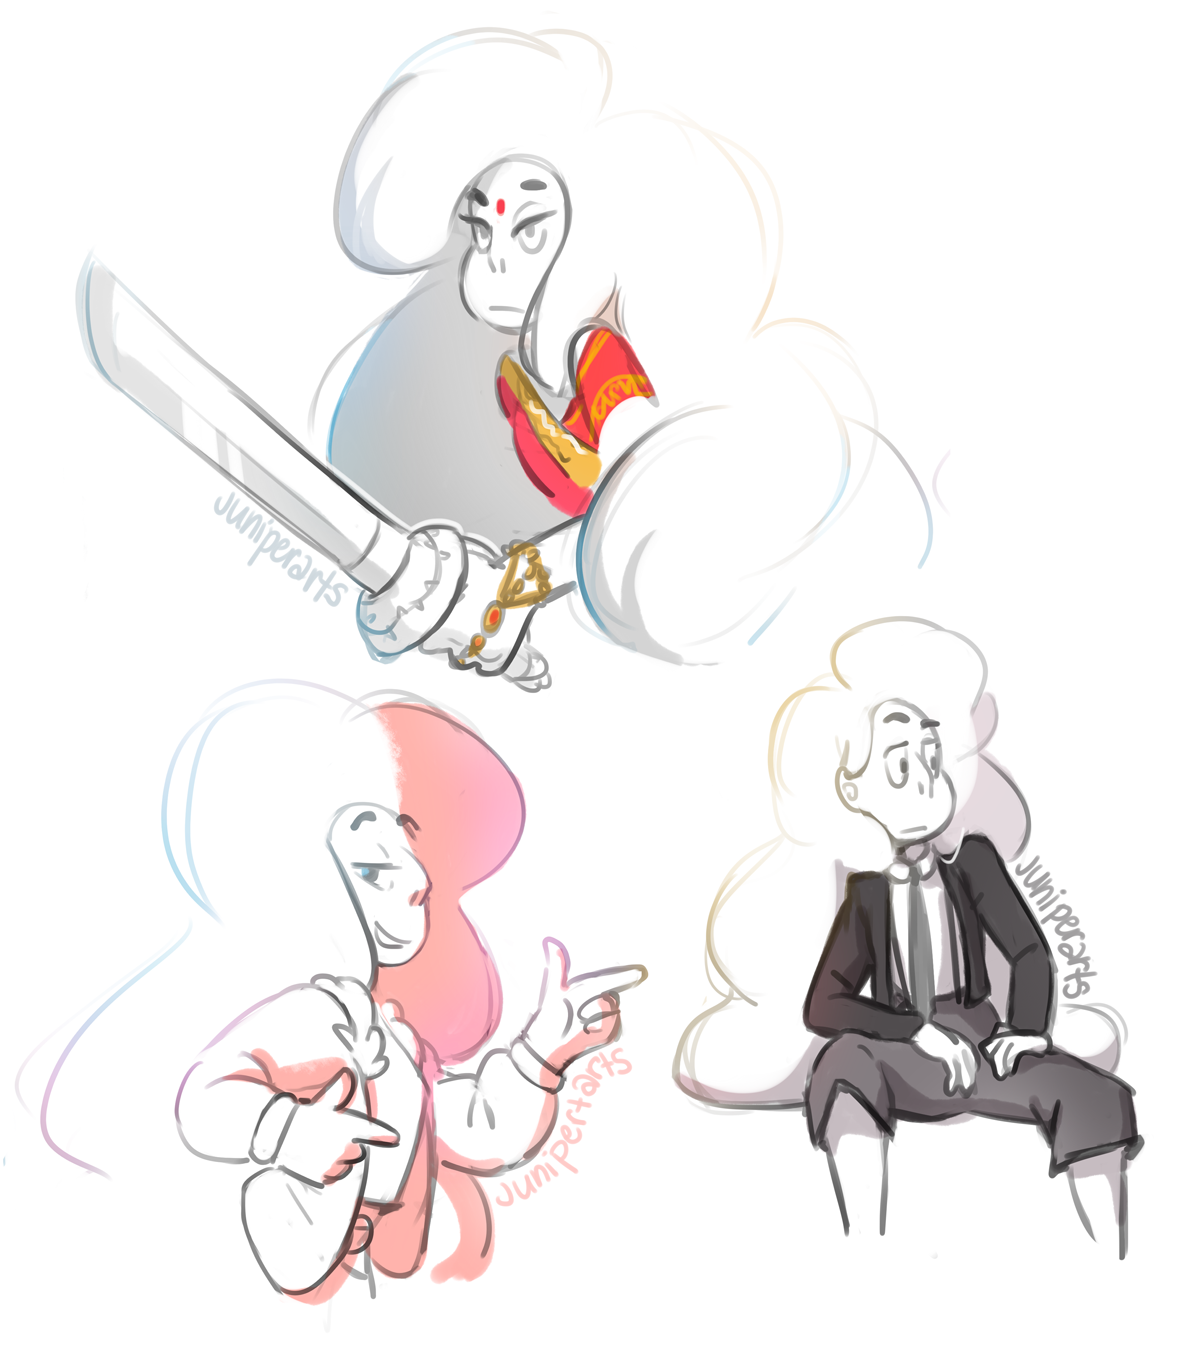 It's been a while since I've drawn them so here's some Stevonnie doodles before the nuke hits.